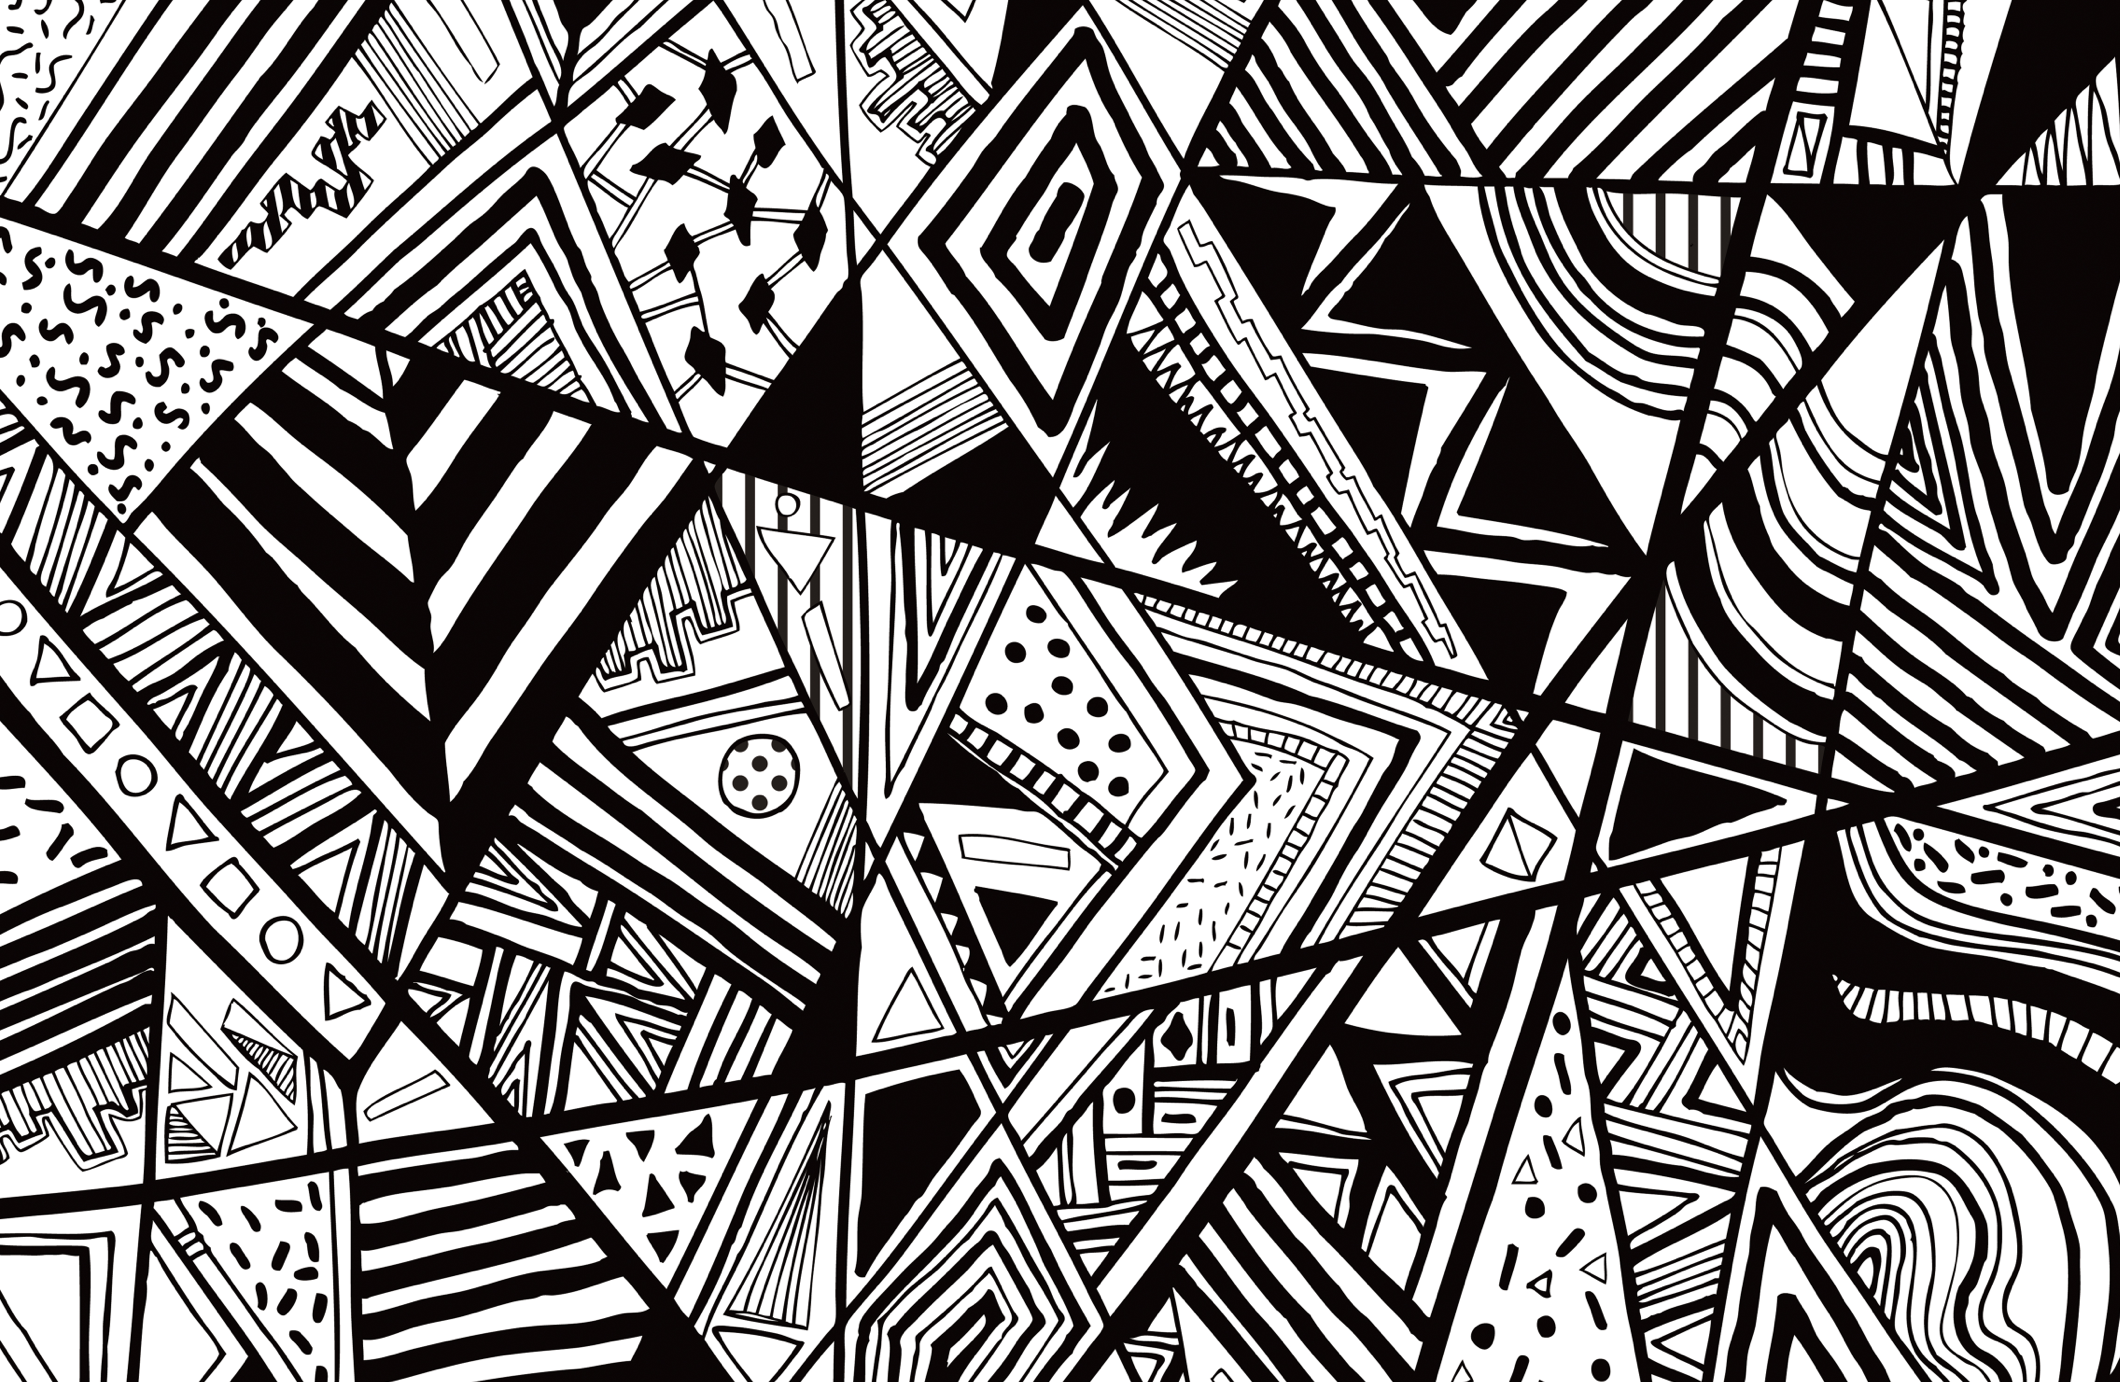 Black And White Abstract Line Patterns